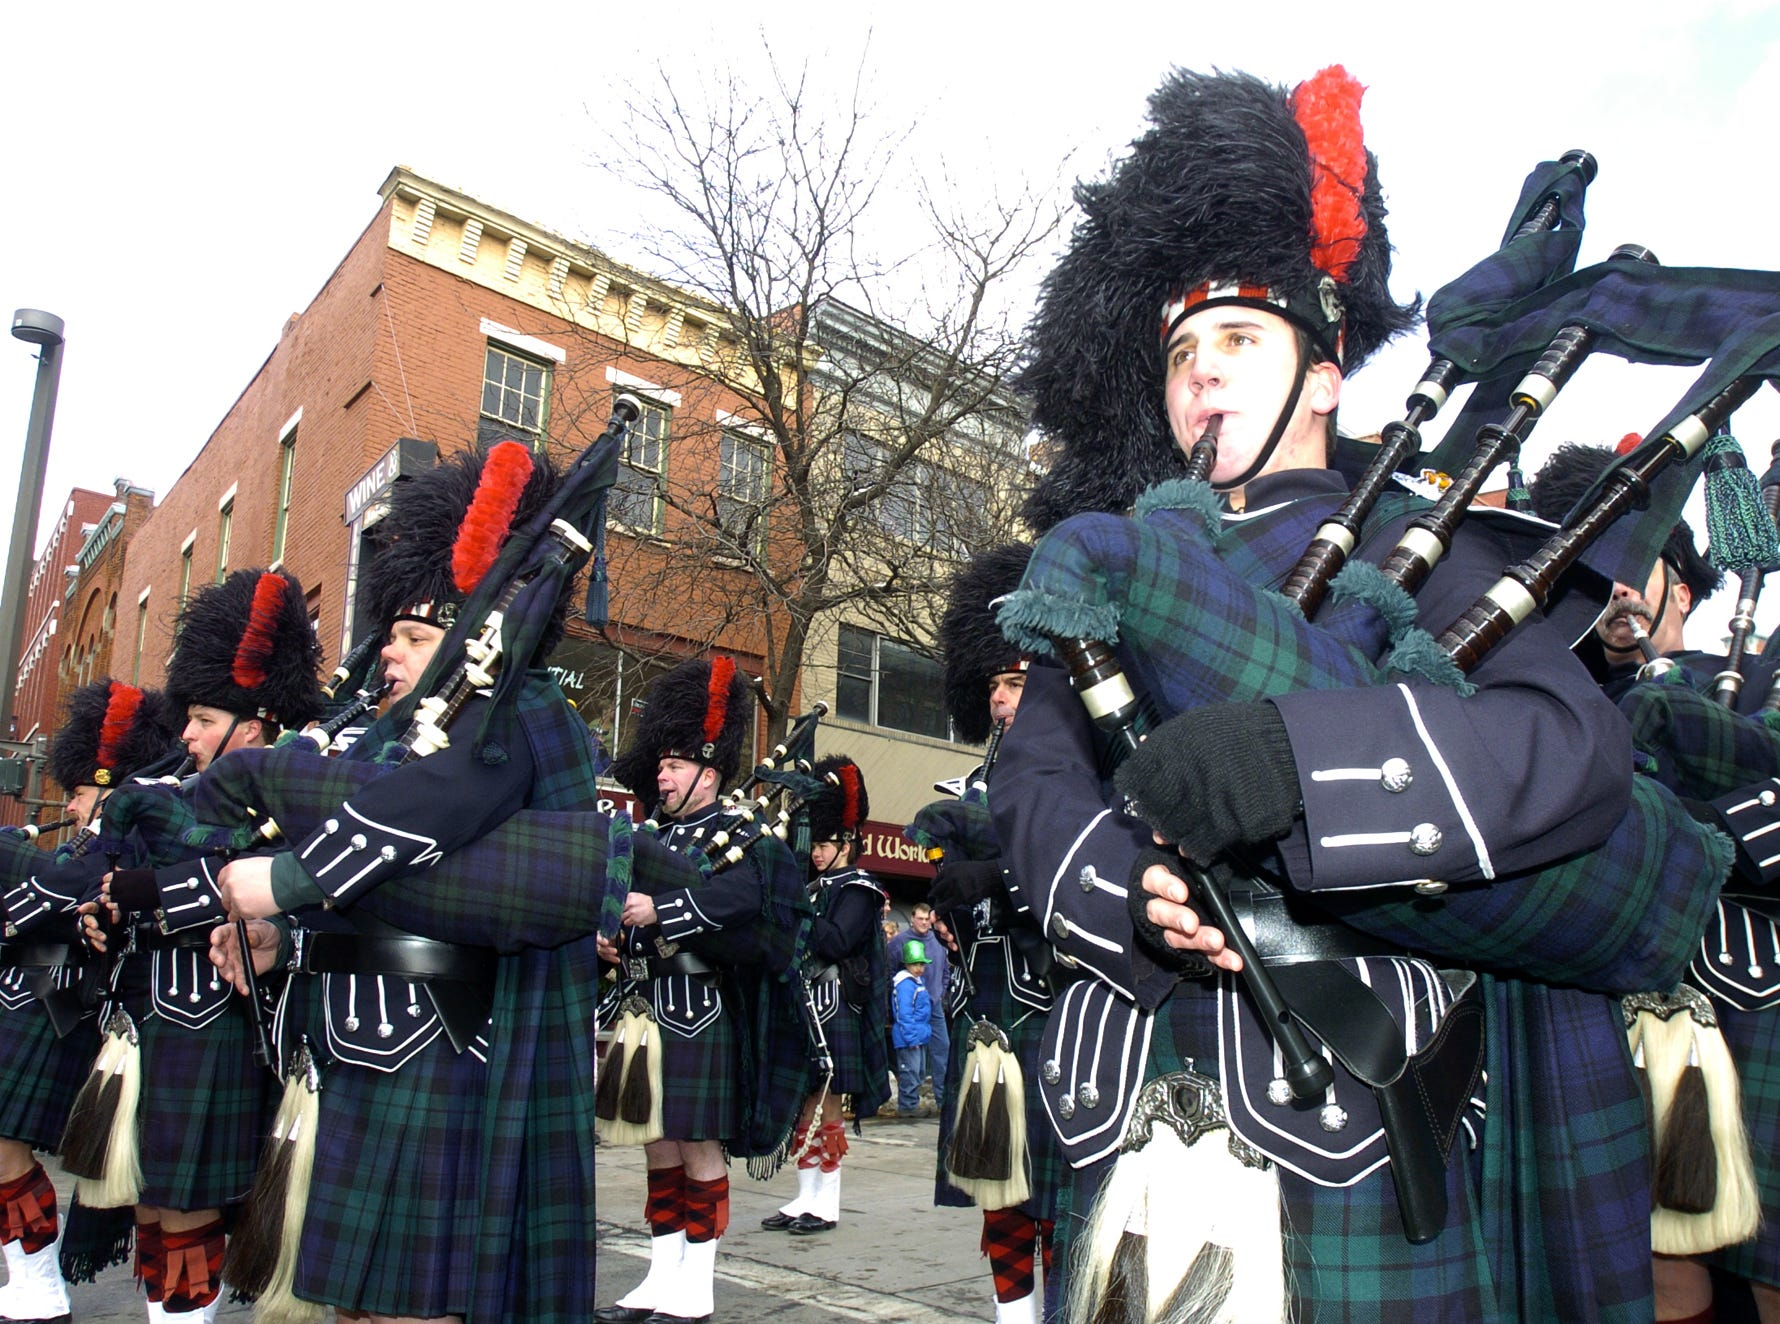 2006: Bagpipers from the Black Diamond Pipe Band, Scranton, Pa., entertained parade watchers on Saturday at the St. Patrick's Day Parade in Binghamton.